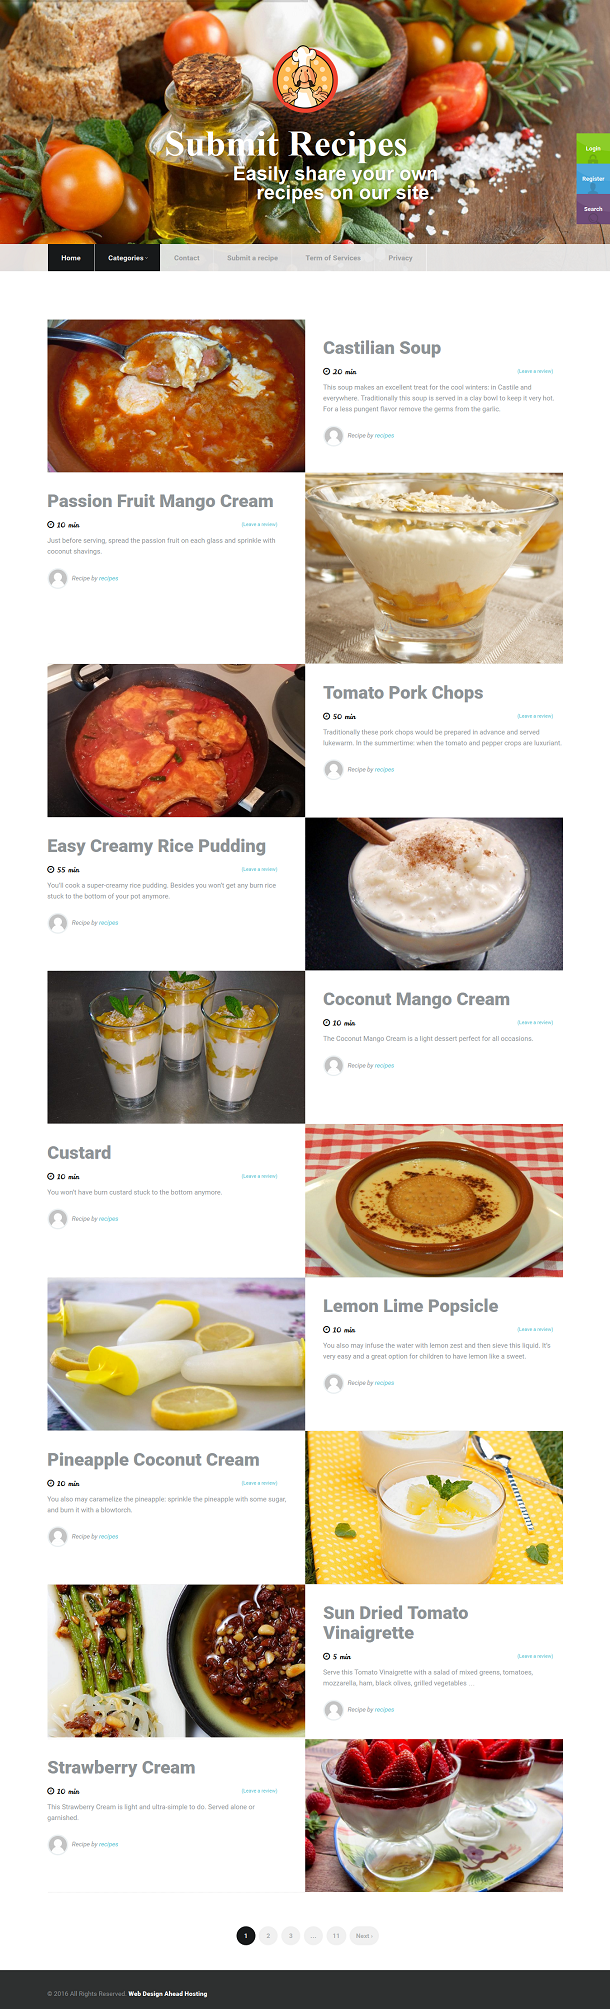 recipes-4-all-browse-through-our-tasty-recipes